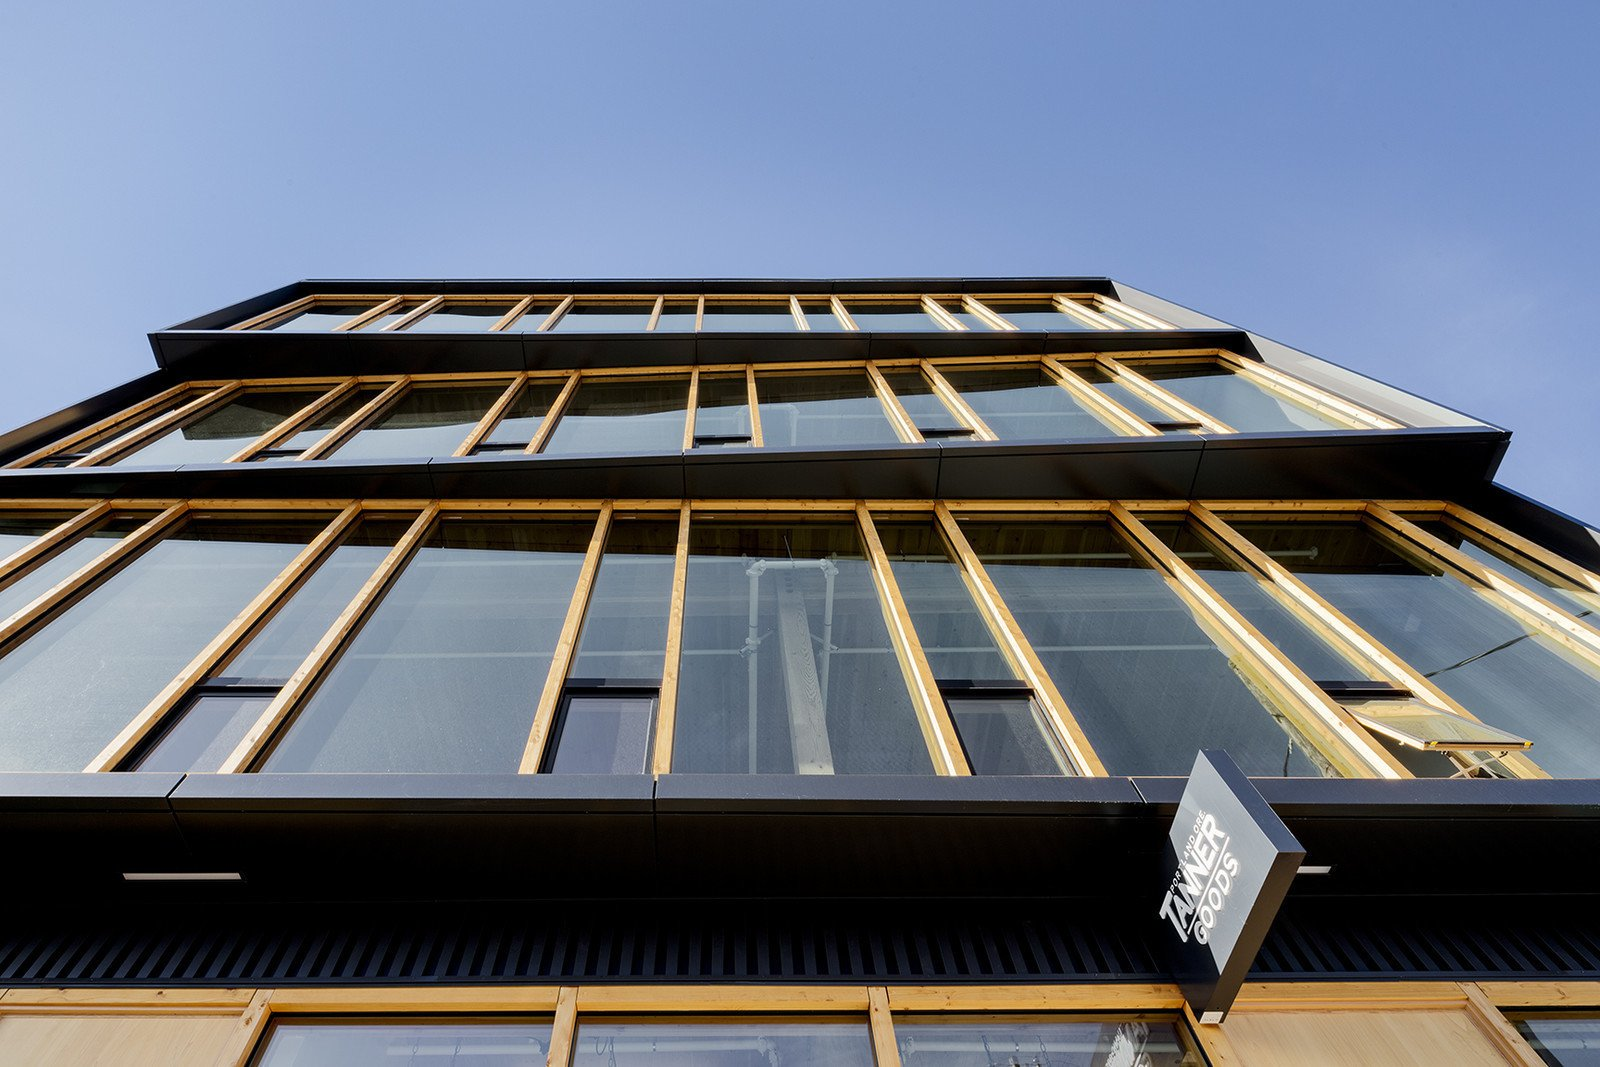 Photo 1 of 9 in Albina Yard—Pioneering the Future of Sustainable Mass Timber Construction